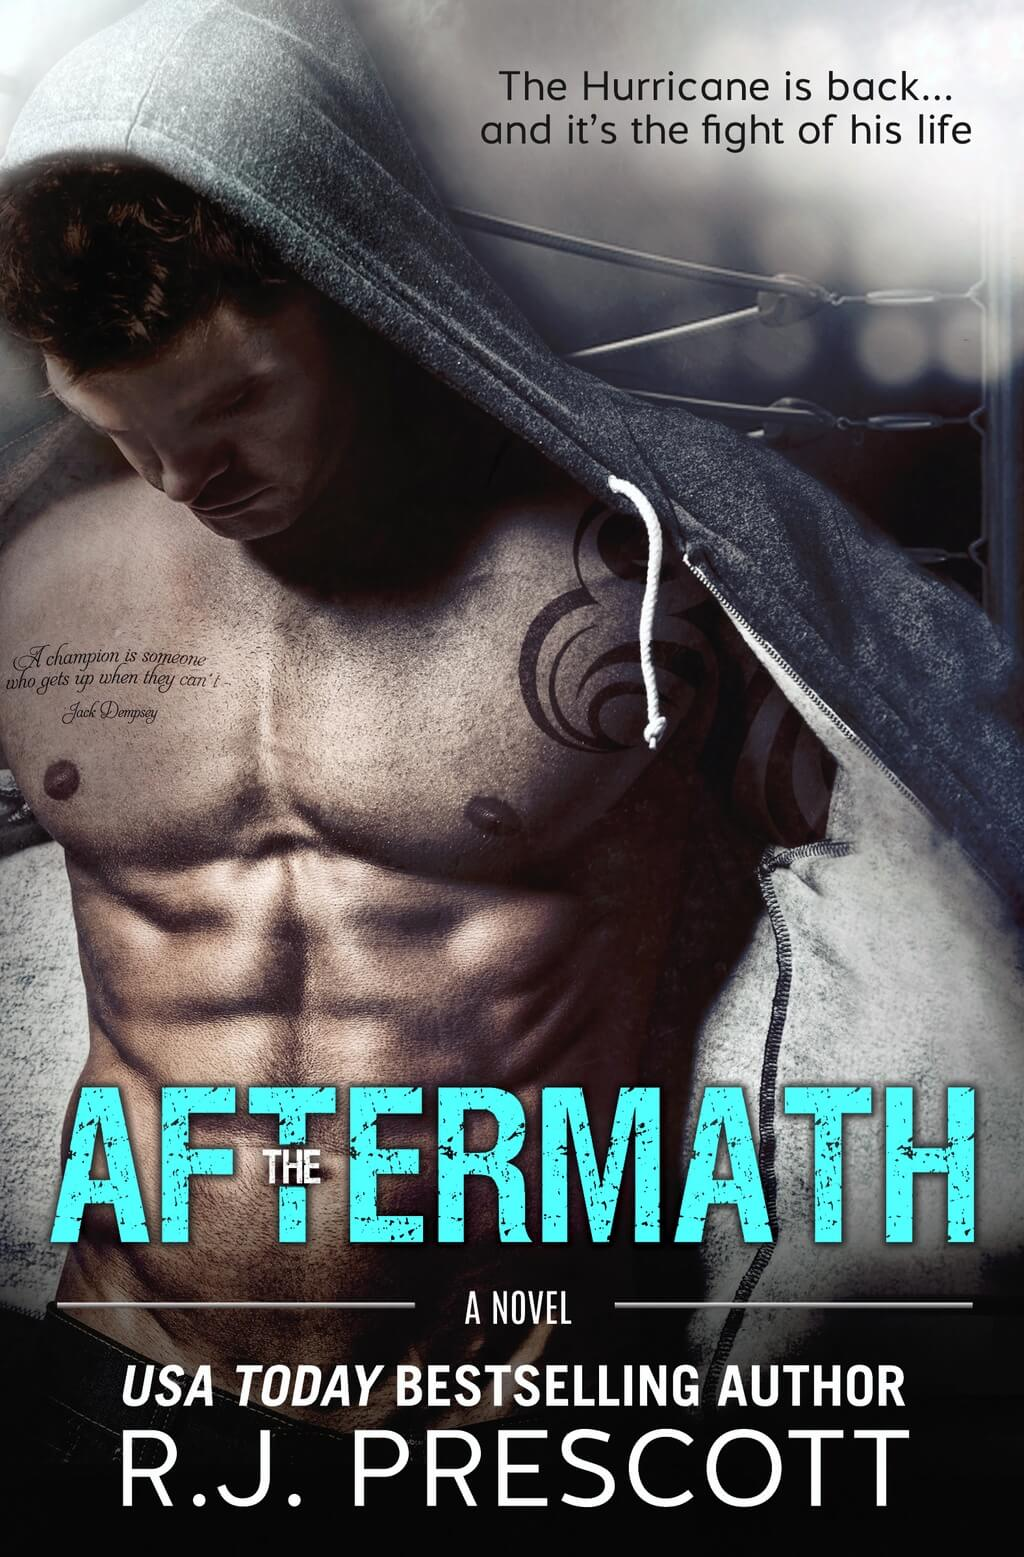 The Aftermath: Review